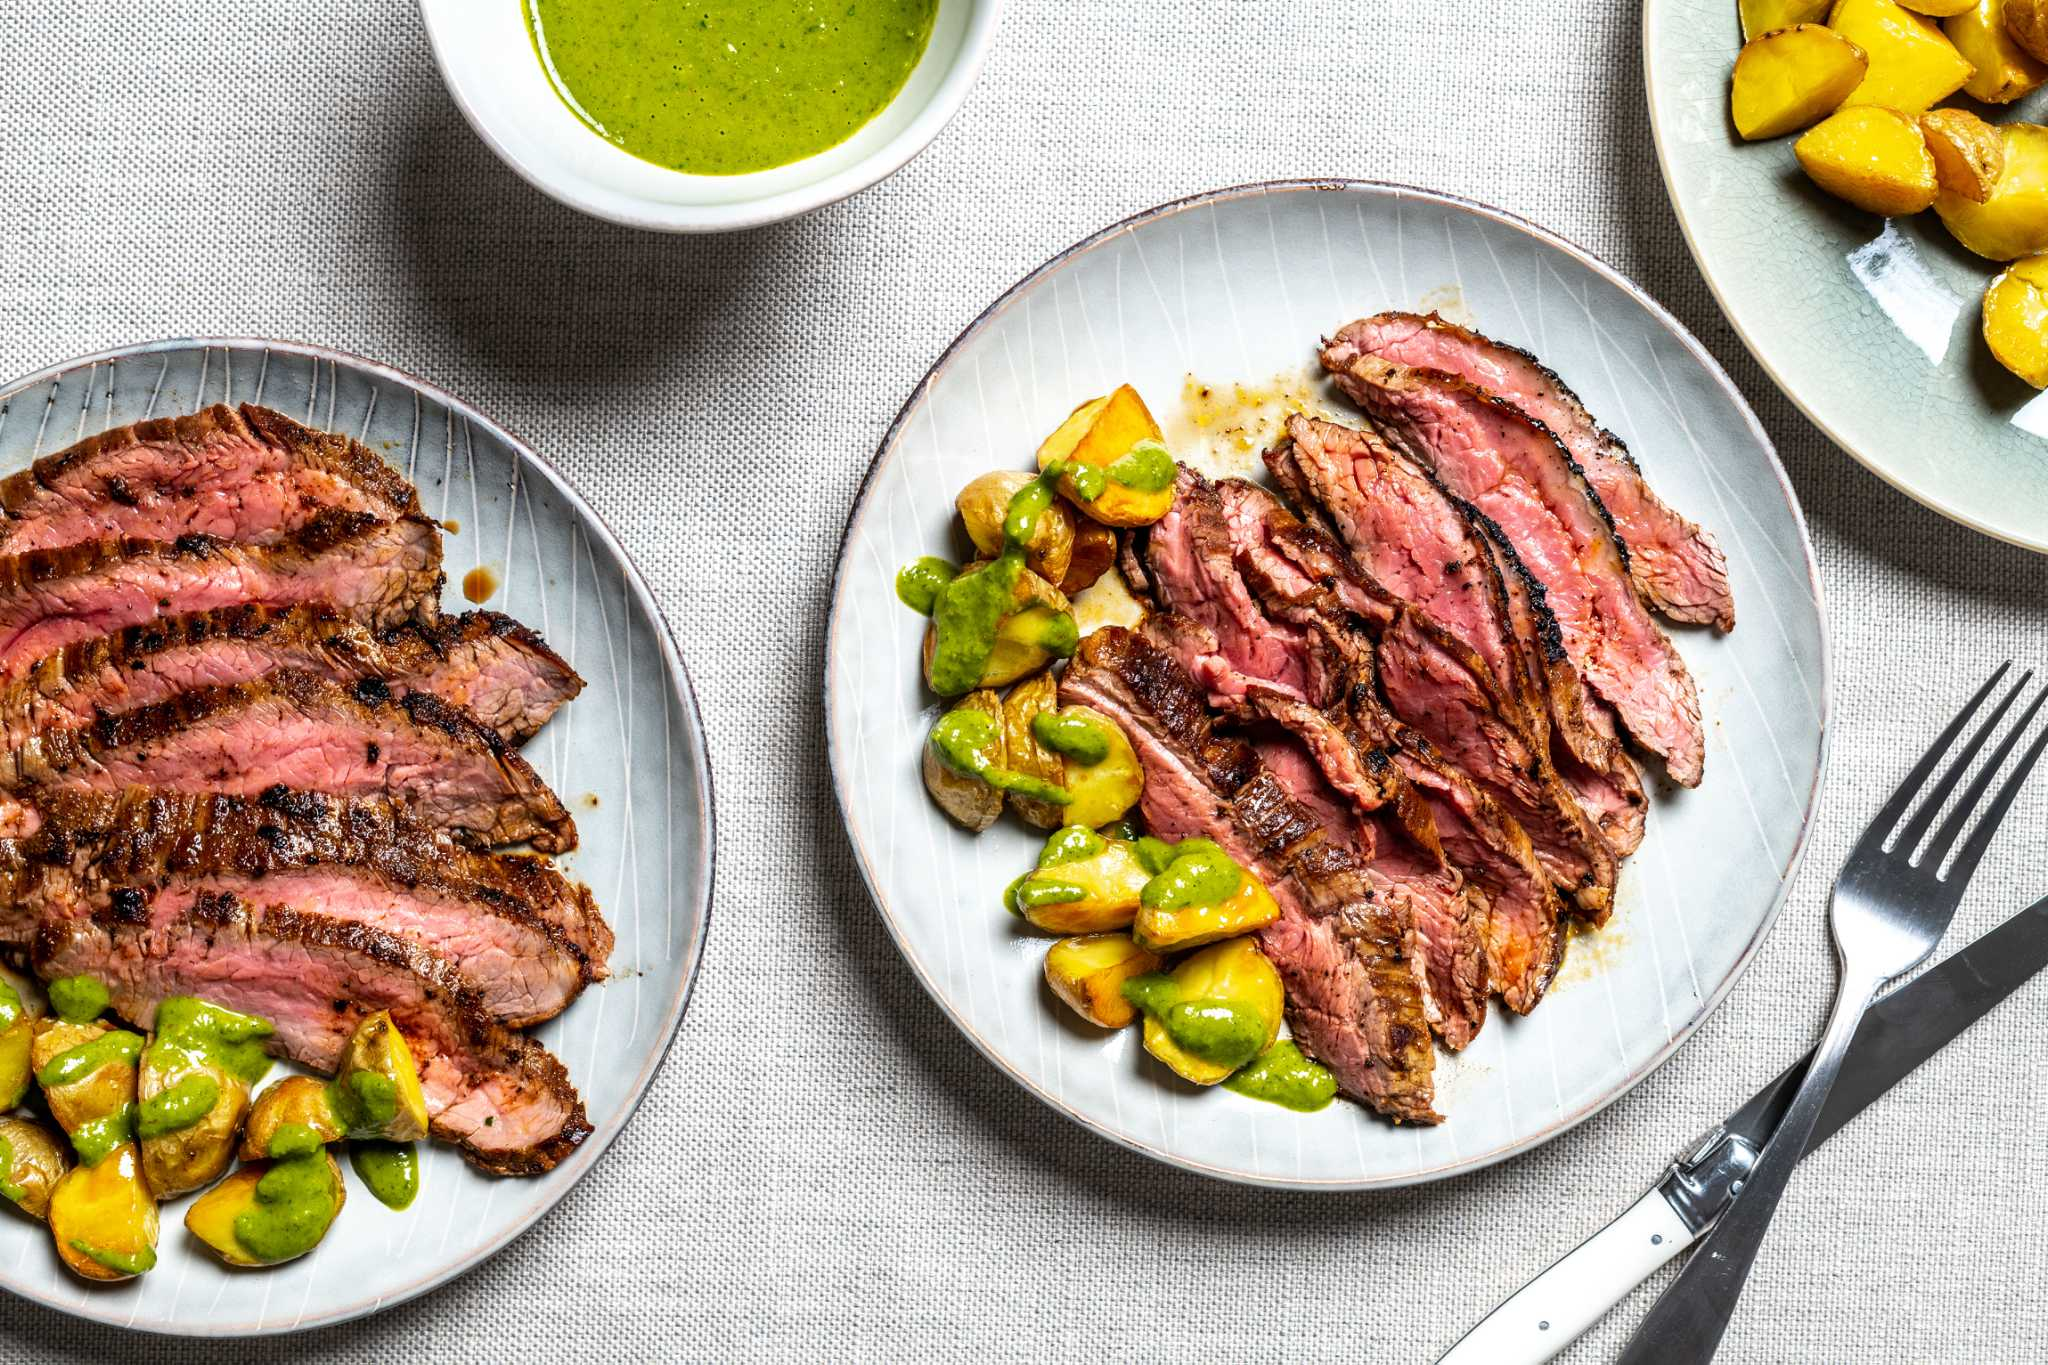 Step up your steak night with cumin-rubbed flank and chimichurri potatoes